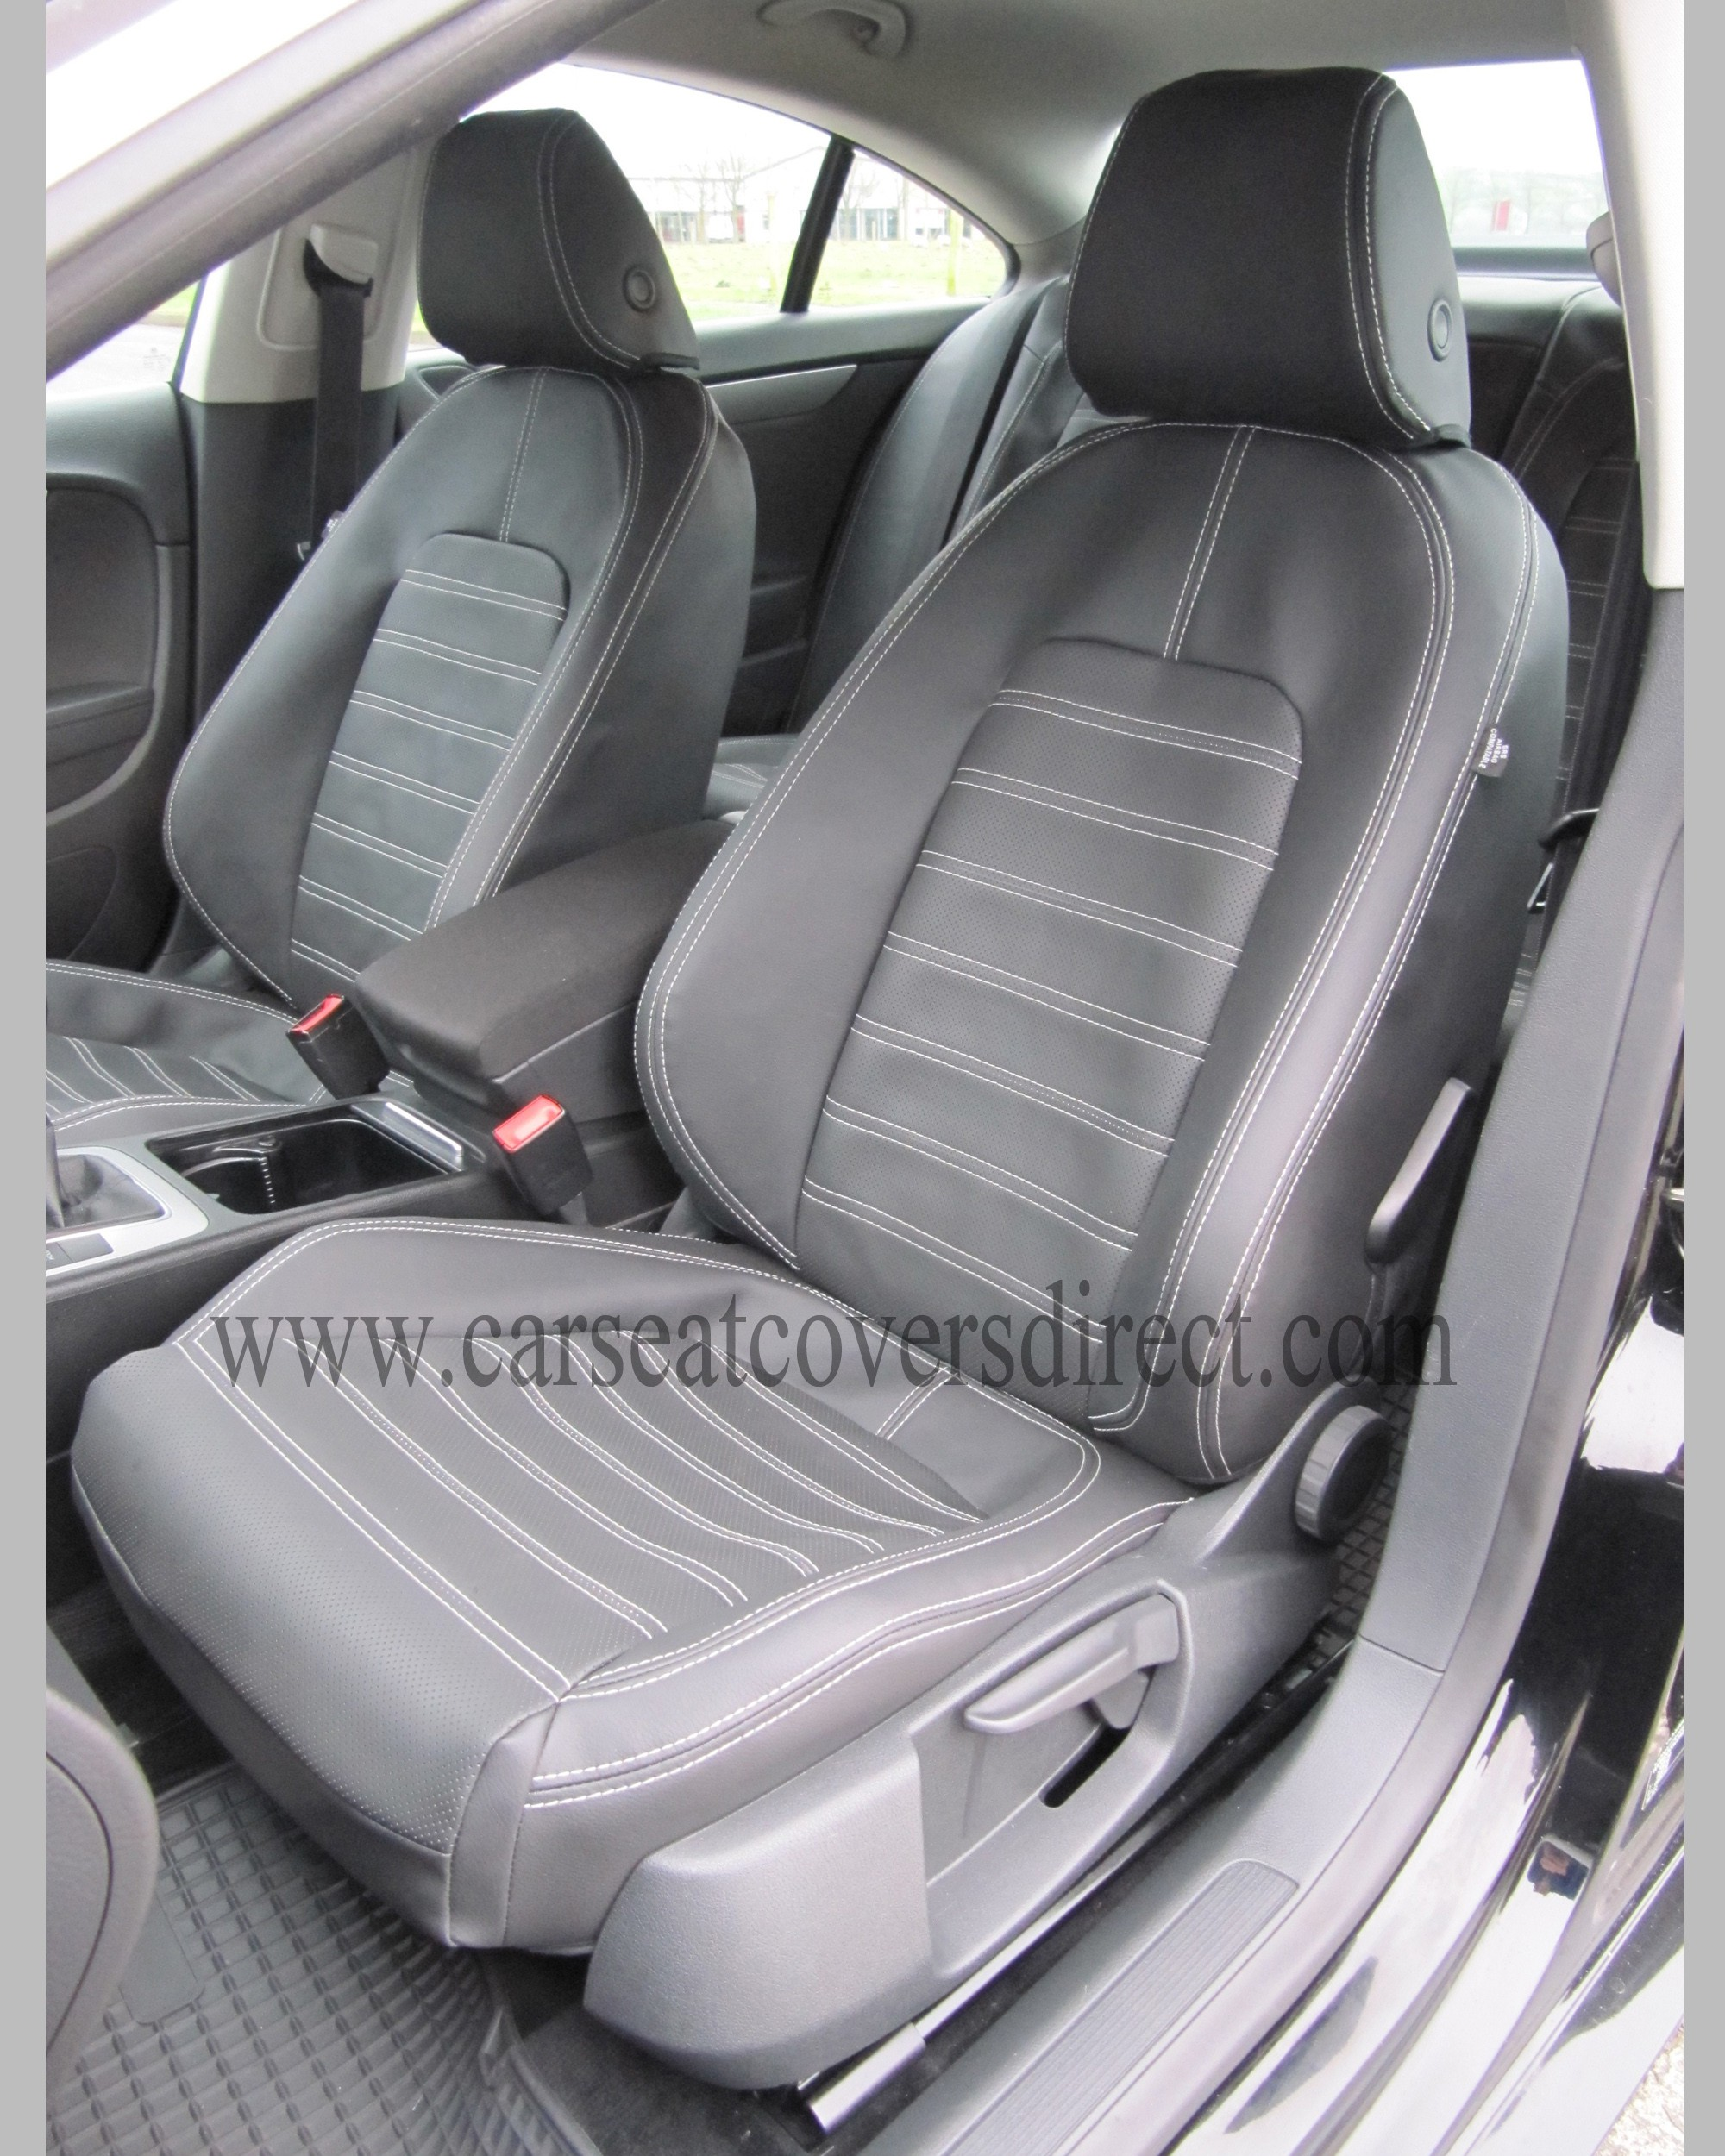 volkswagen vw passat cc seat covers charcoal leatherette foam backing custom car seat covers. Black Bedroom Furniture Sets. Home Design Ideas